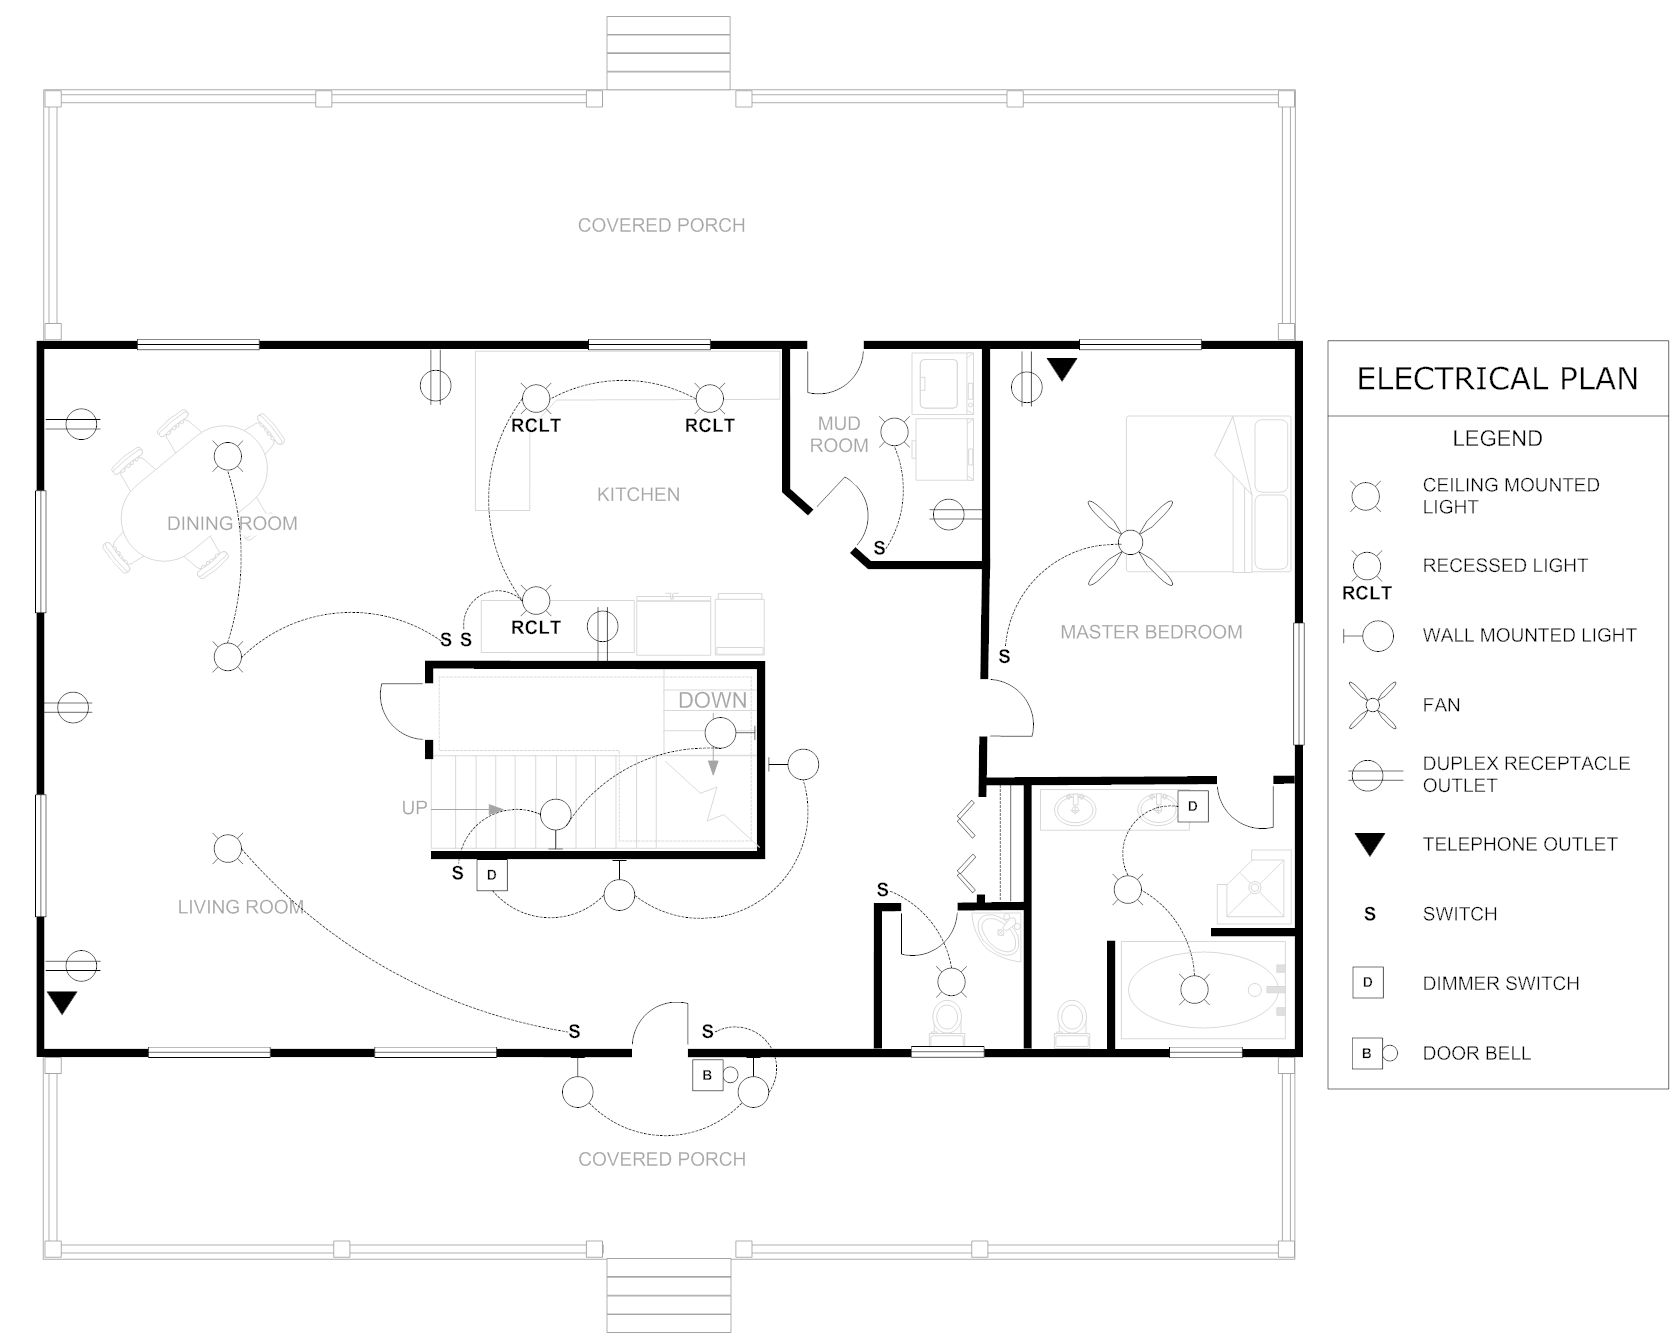 electrical layouts in houses house style pinterest house electrical layouts in houses